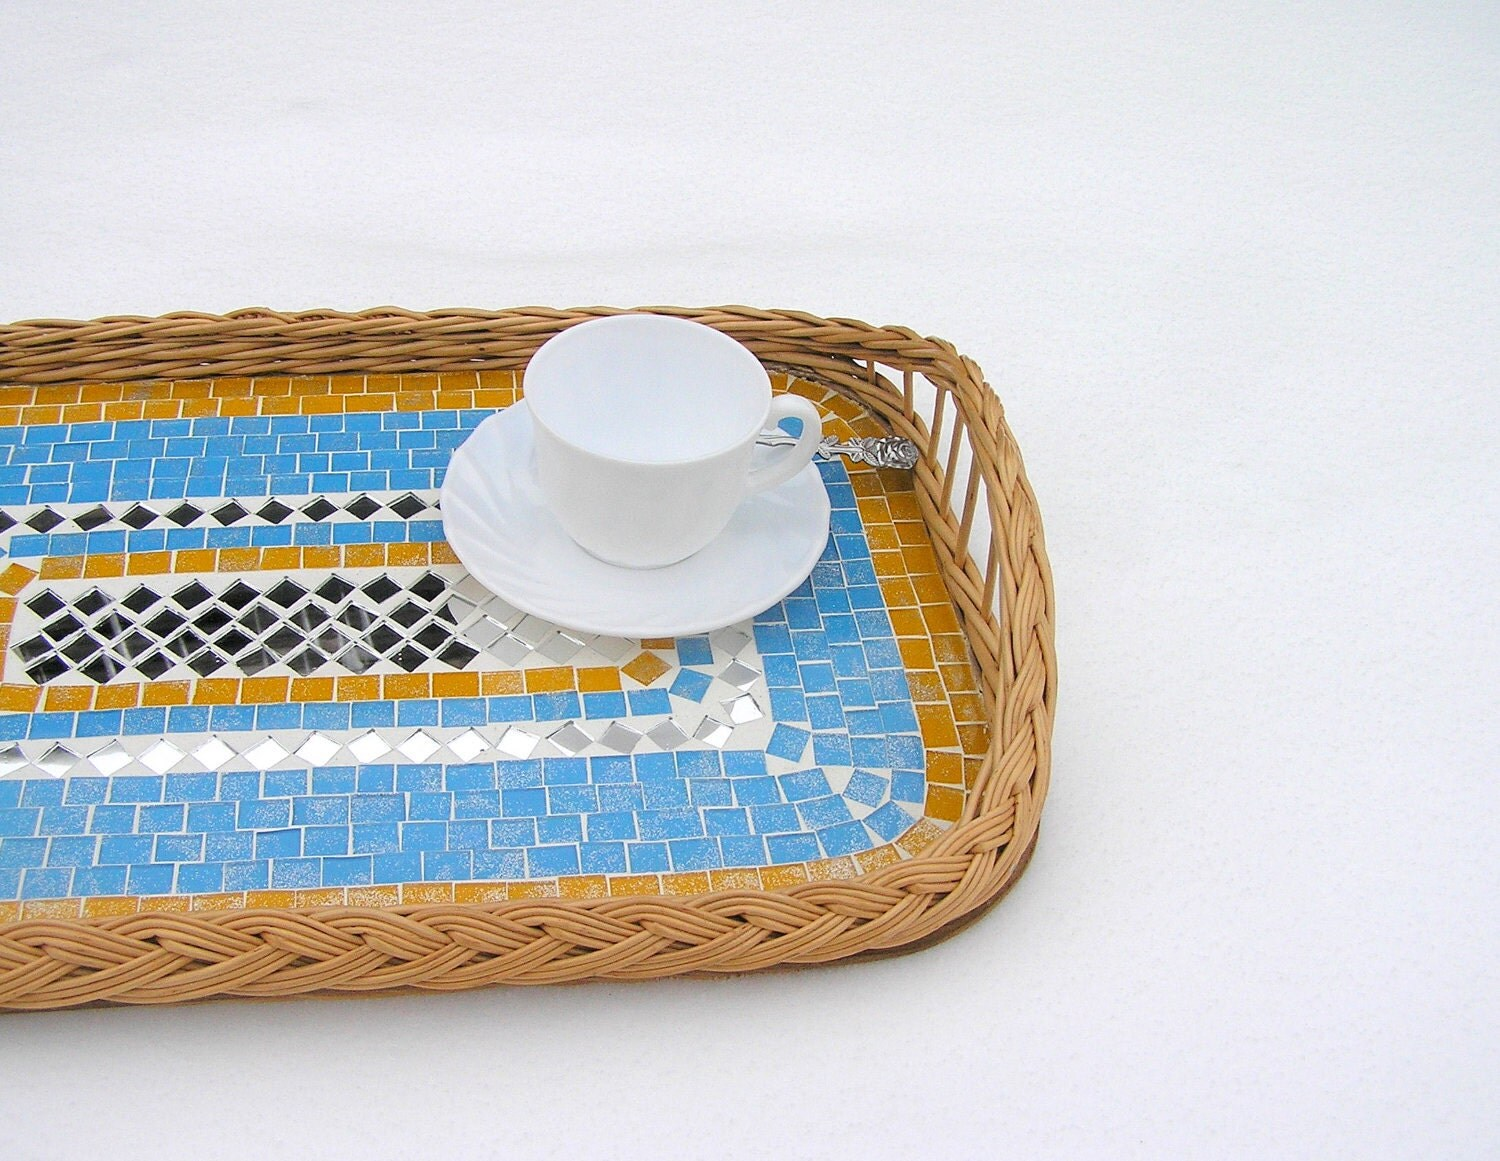 Serving tray light blue glass mosaic home decor - SirliMosaic